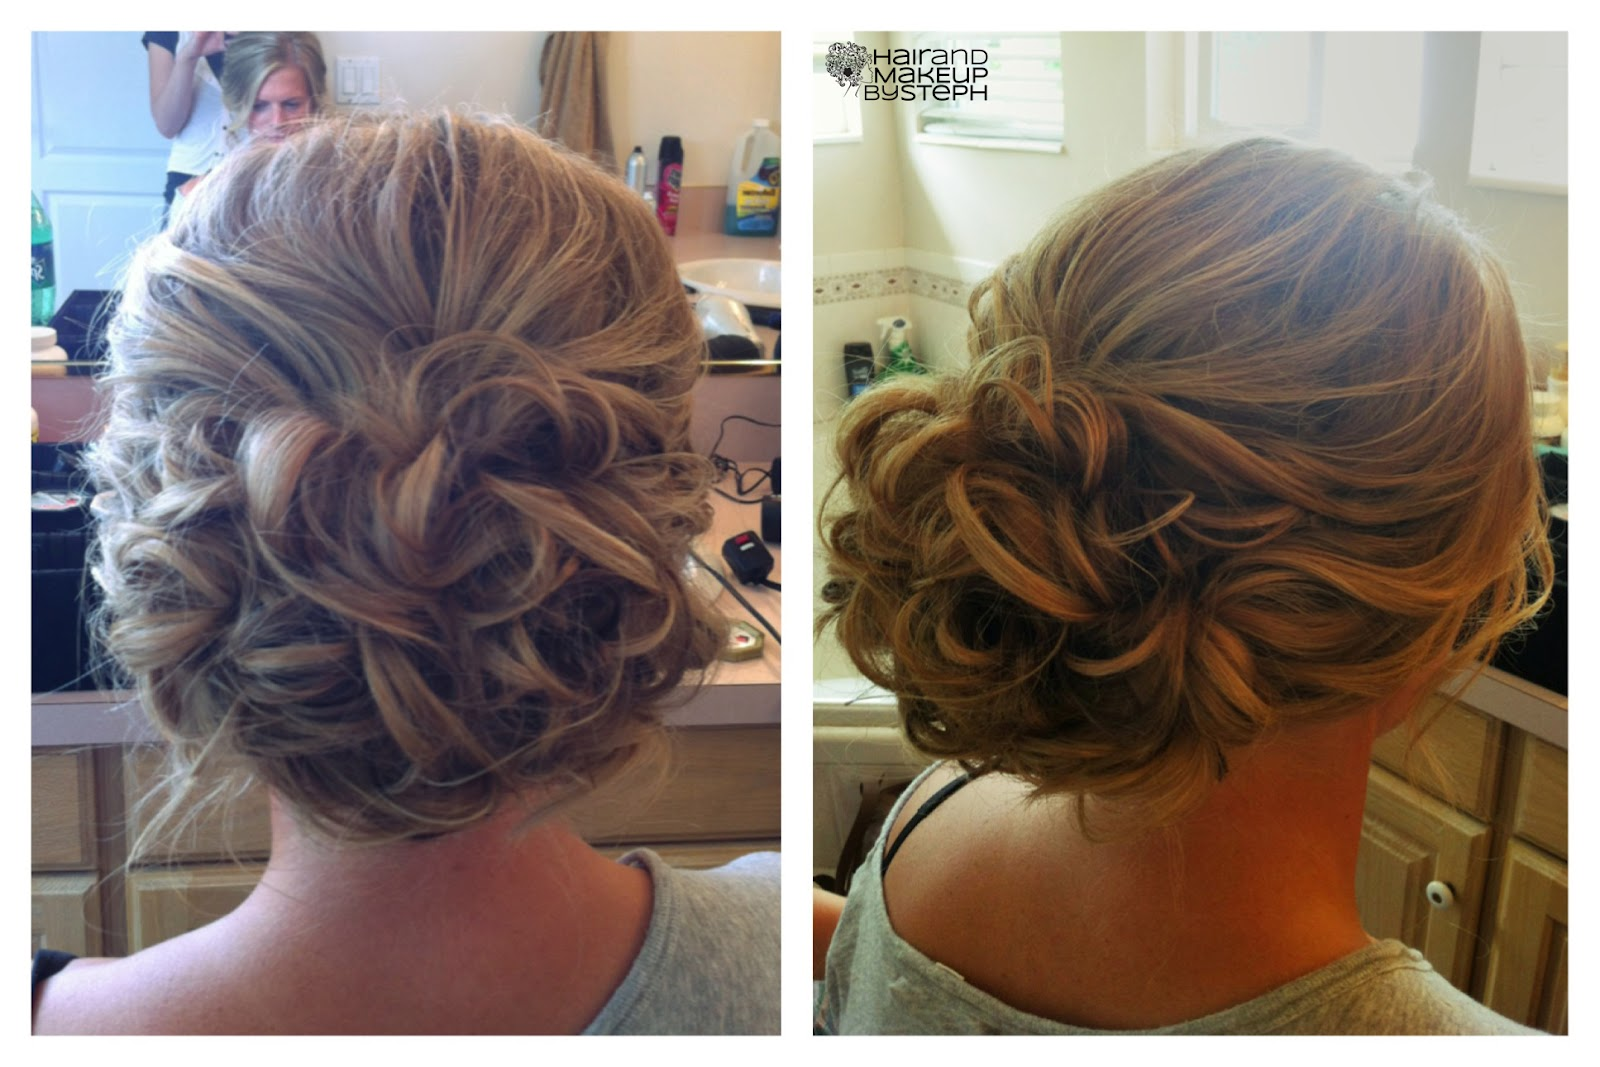 Hair Style With Curls: Hair And Make-up By Steph: September 2012